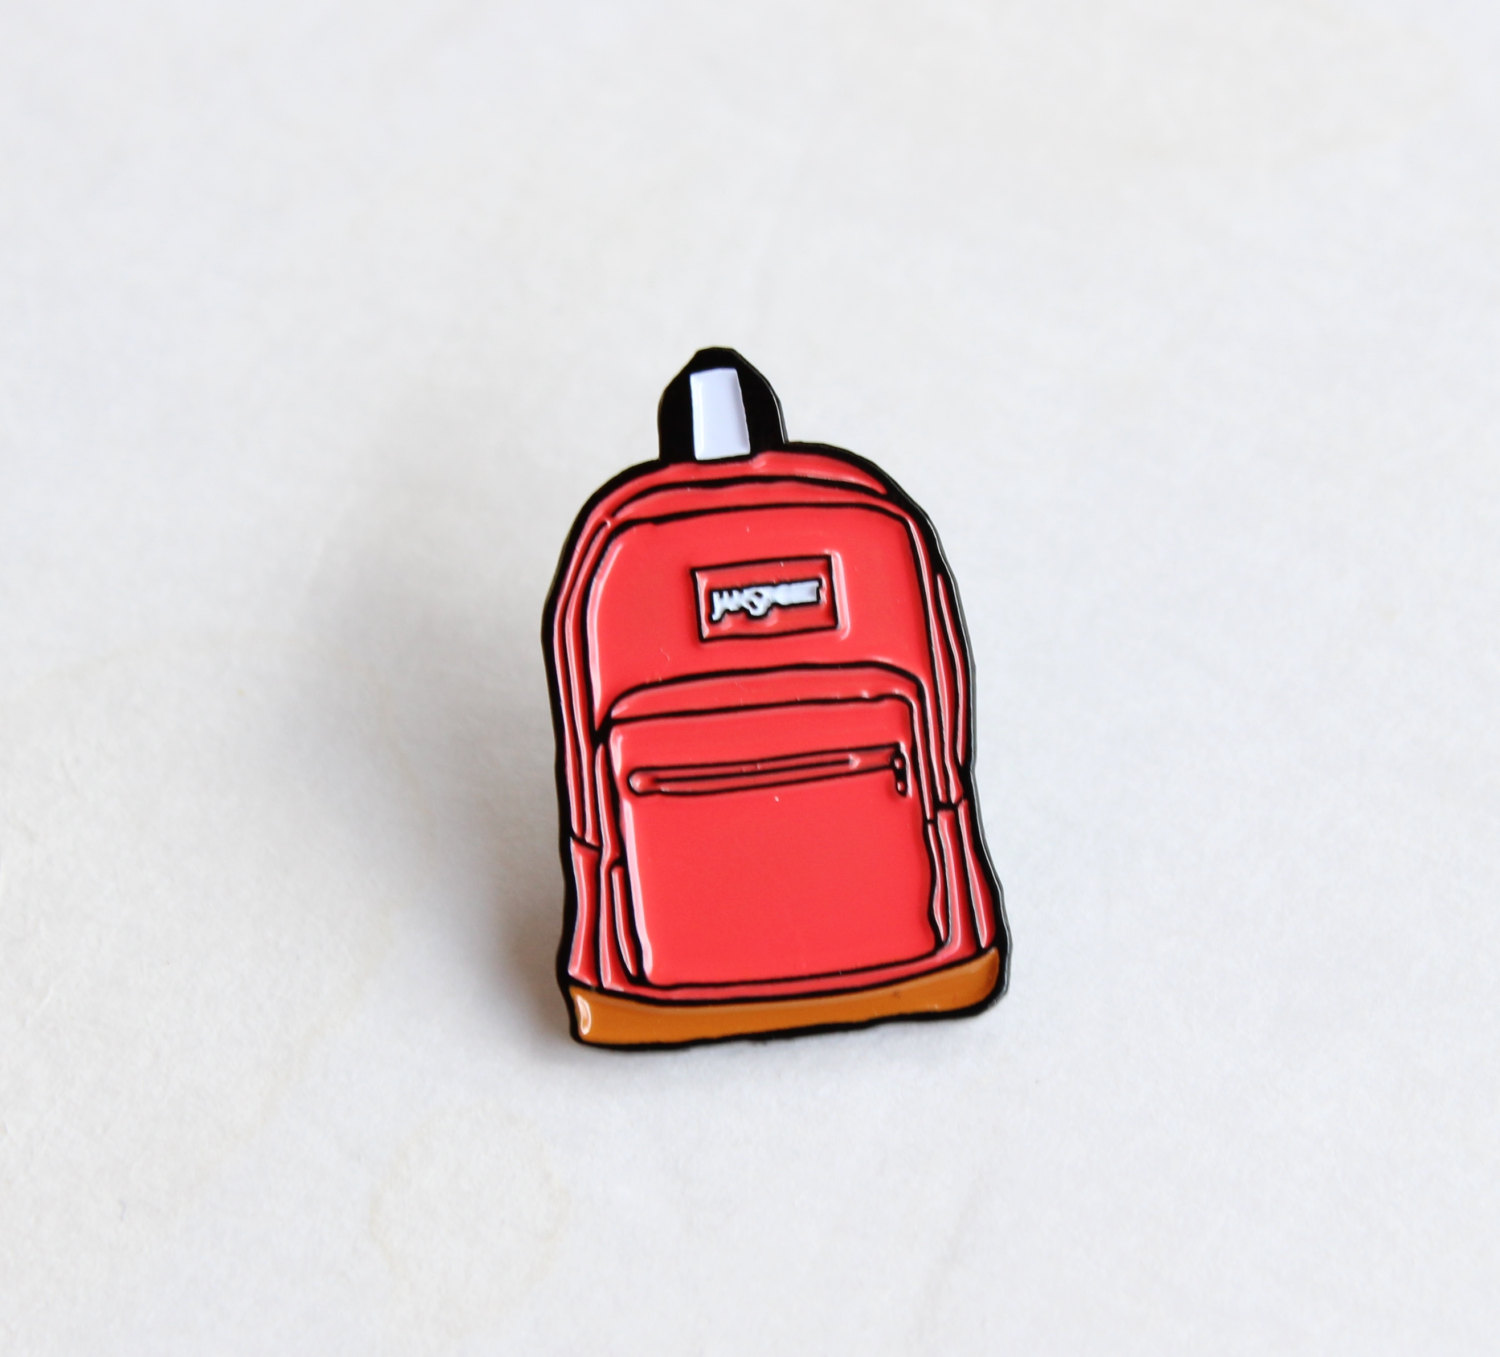 Pink Jansport Backpack Lapel Pin - 1 25